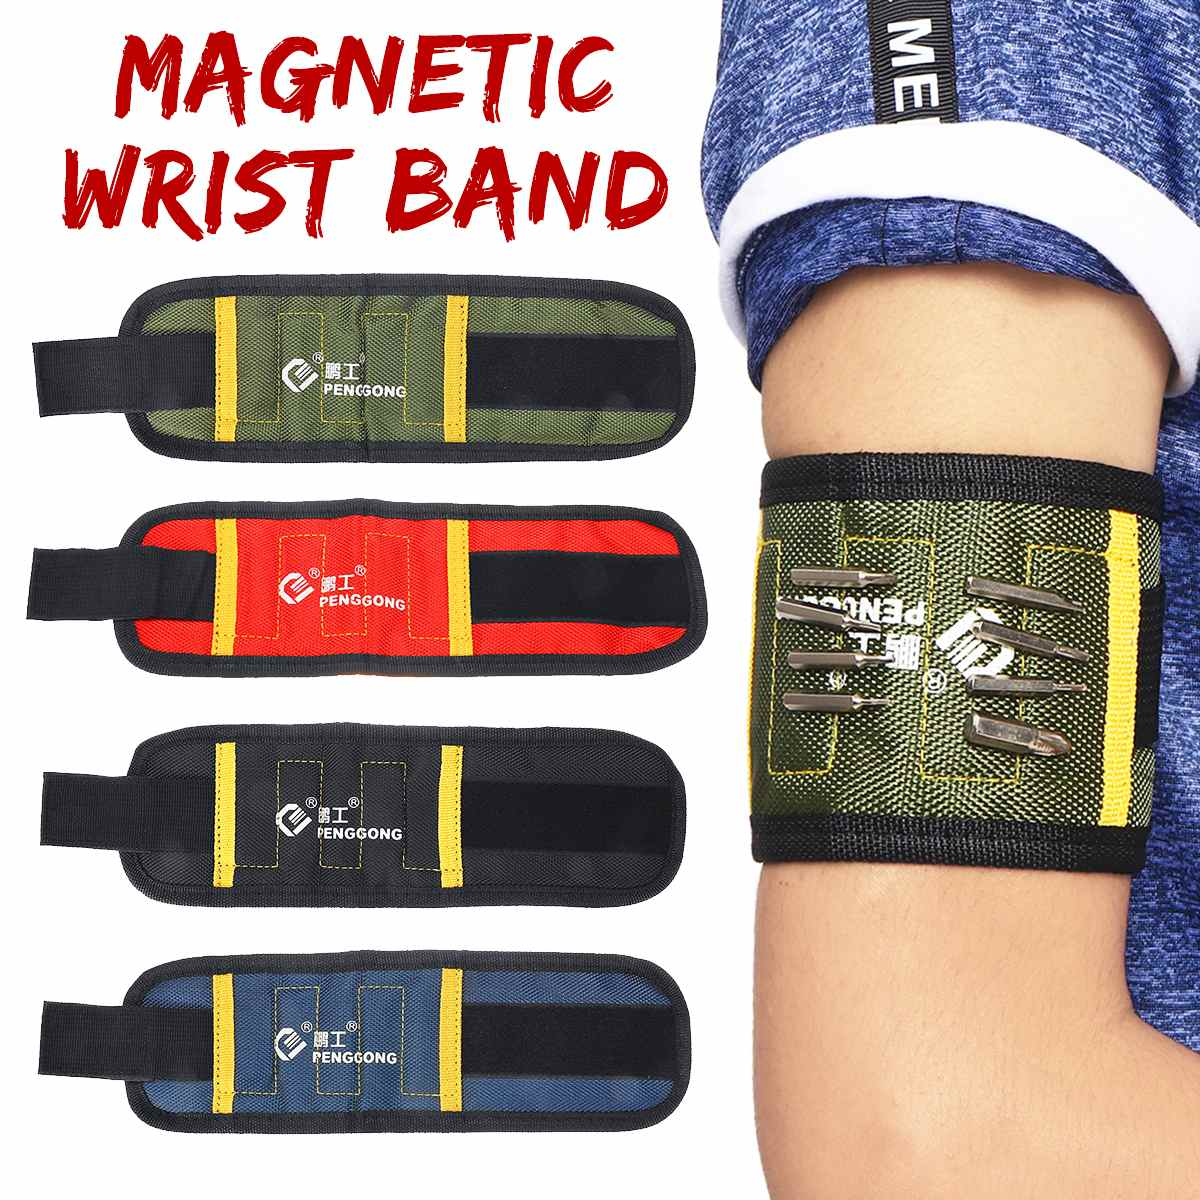 New Magnetic Wristband Portable Tool Bag Screw Nail Holder Wrist Band Tool Belt Screws Nails Drill Bits Bracelet For Repair Tool